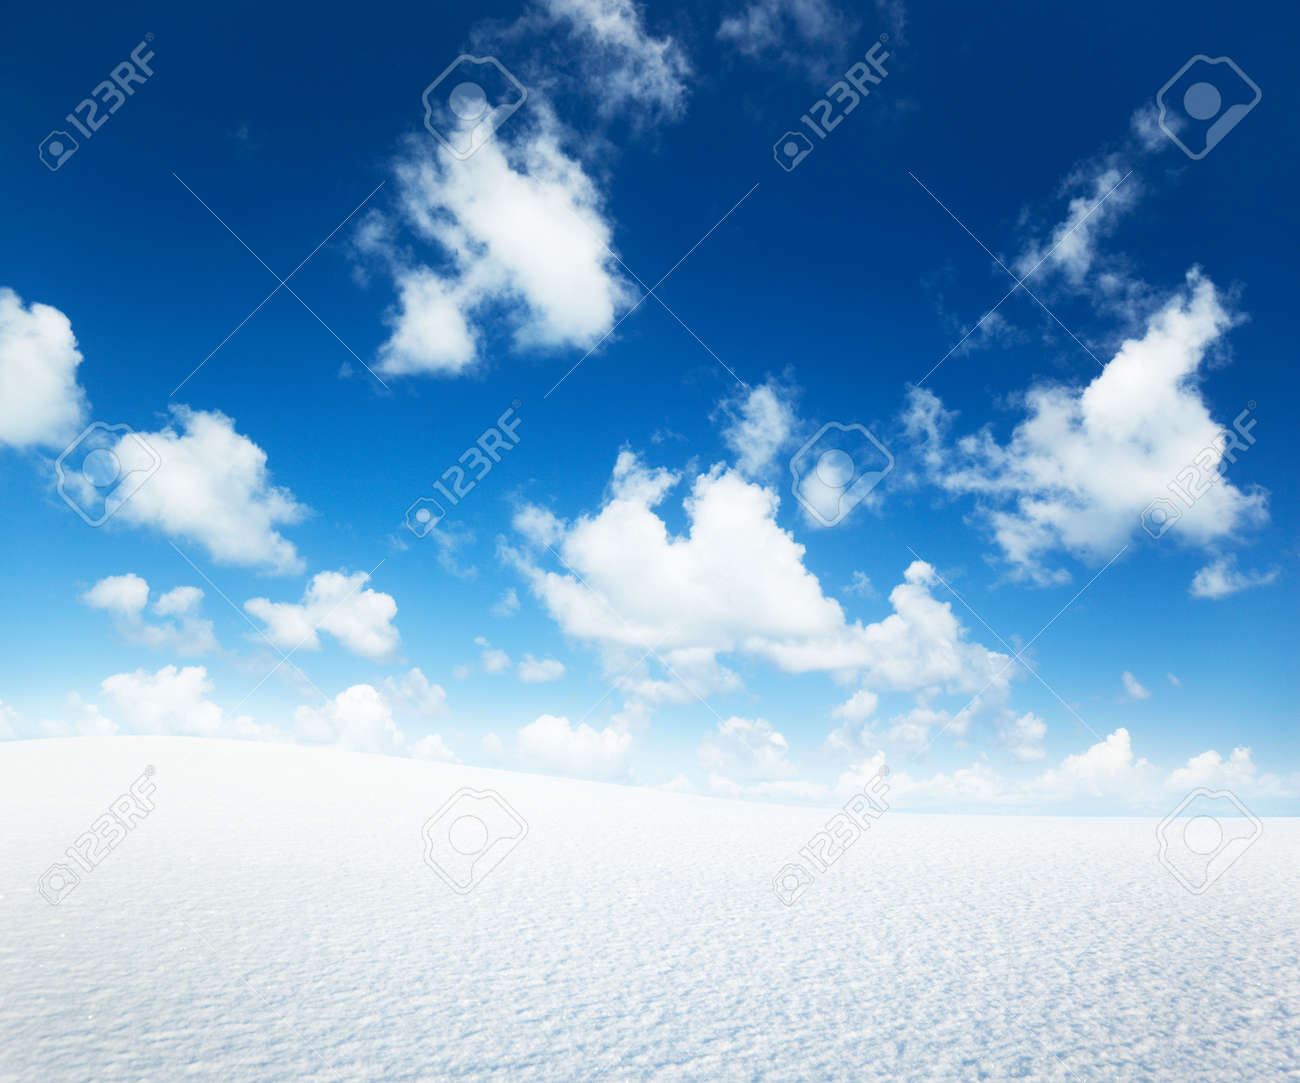 field of winter snow and perfect blue sky Stock Photo - 6596845